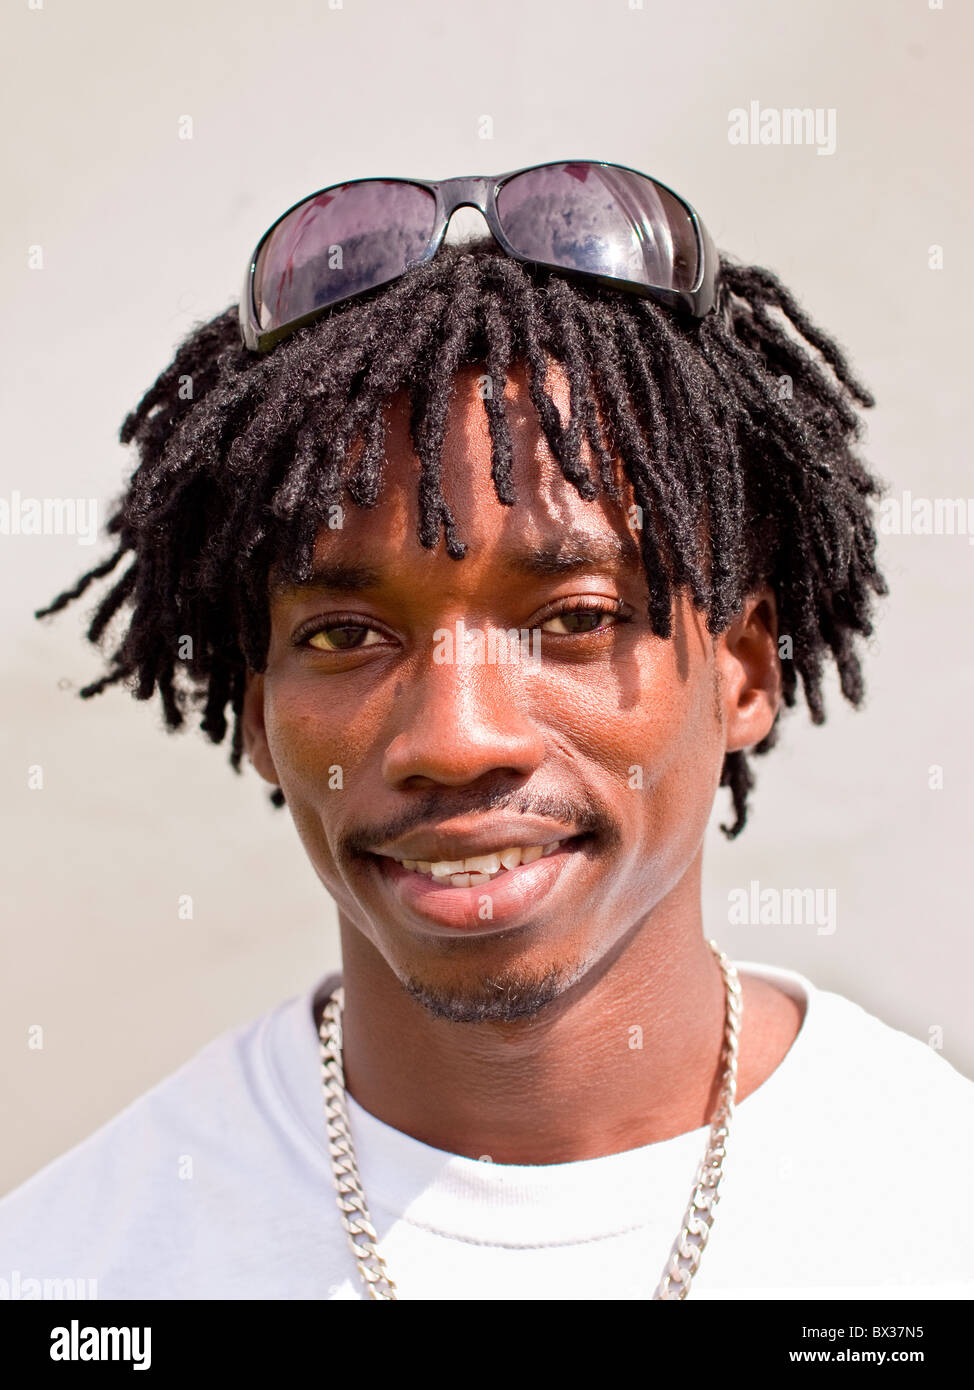 Black male Afro-Caribbean coloured background sun glasses good looking lively attractive handsome smile healthy - Stock Image